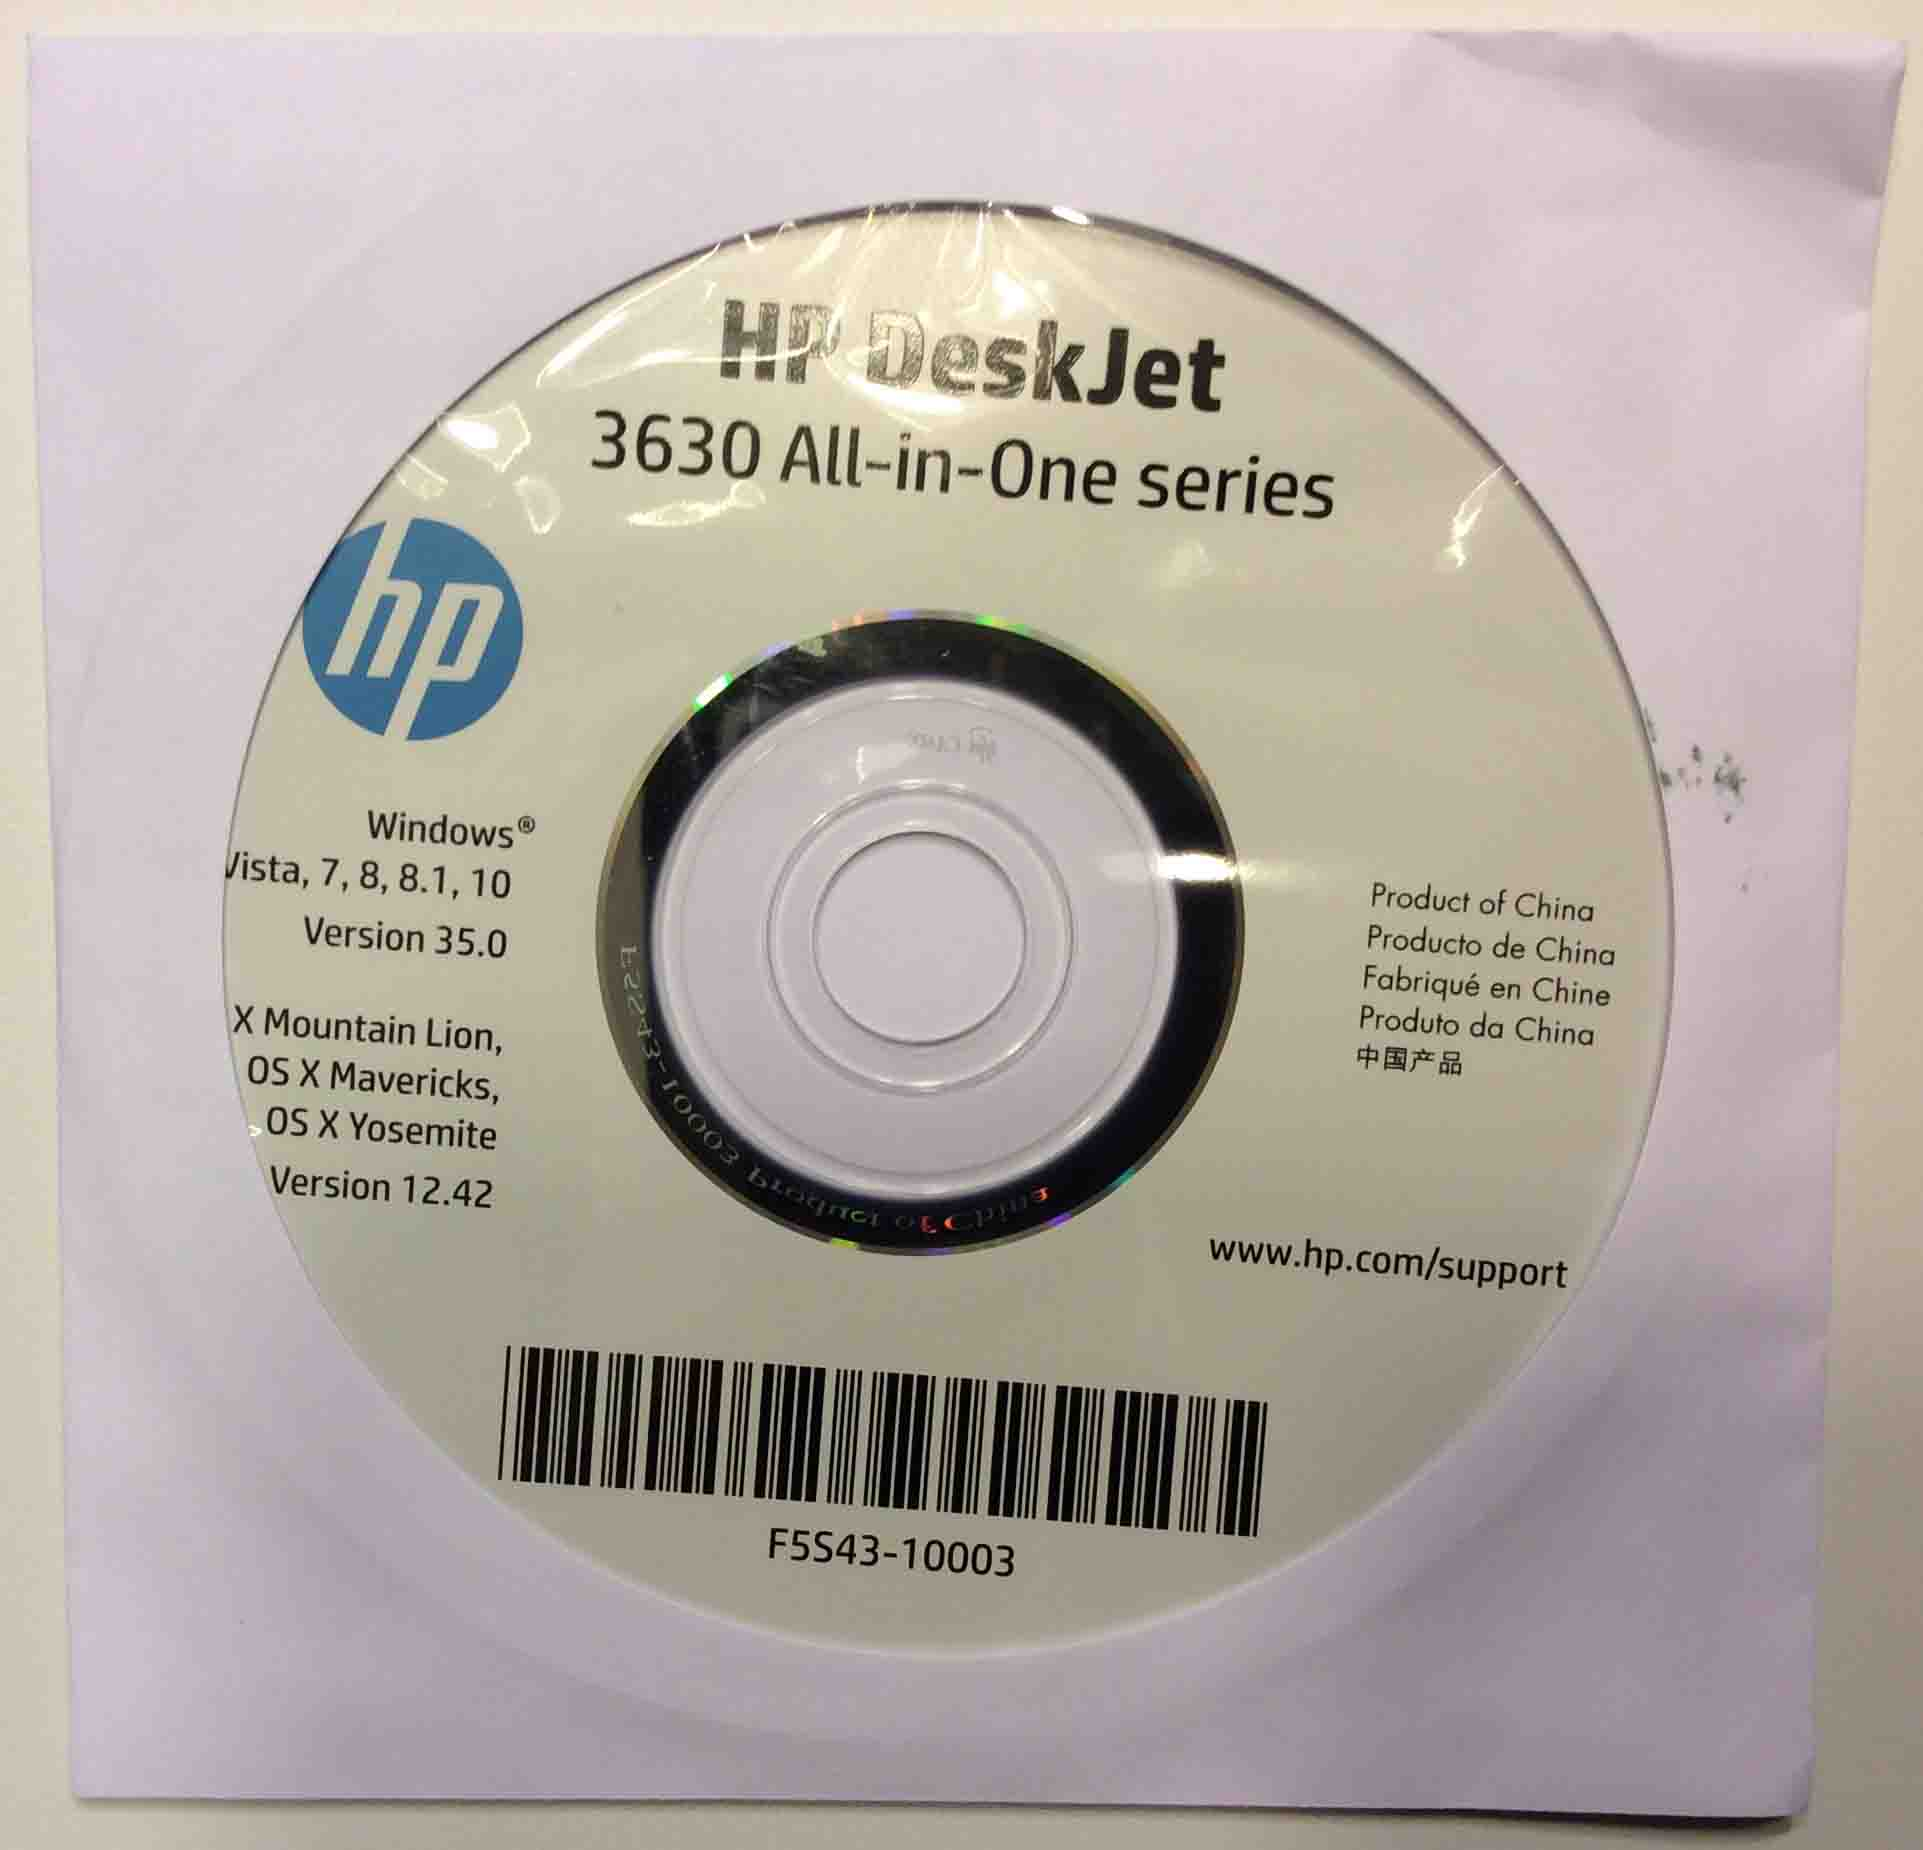 hp deskjet 3630 how to connect with cord